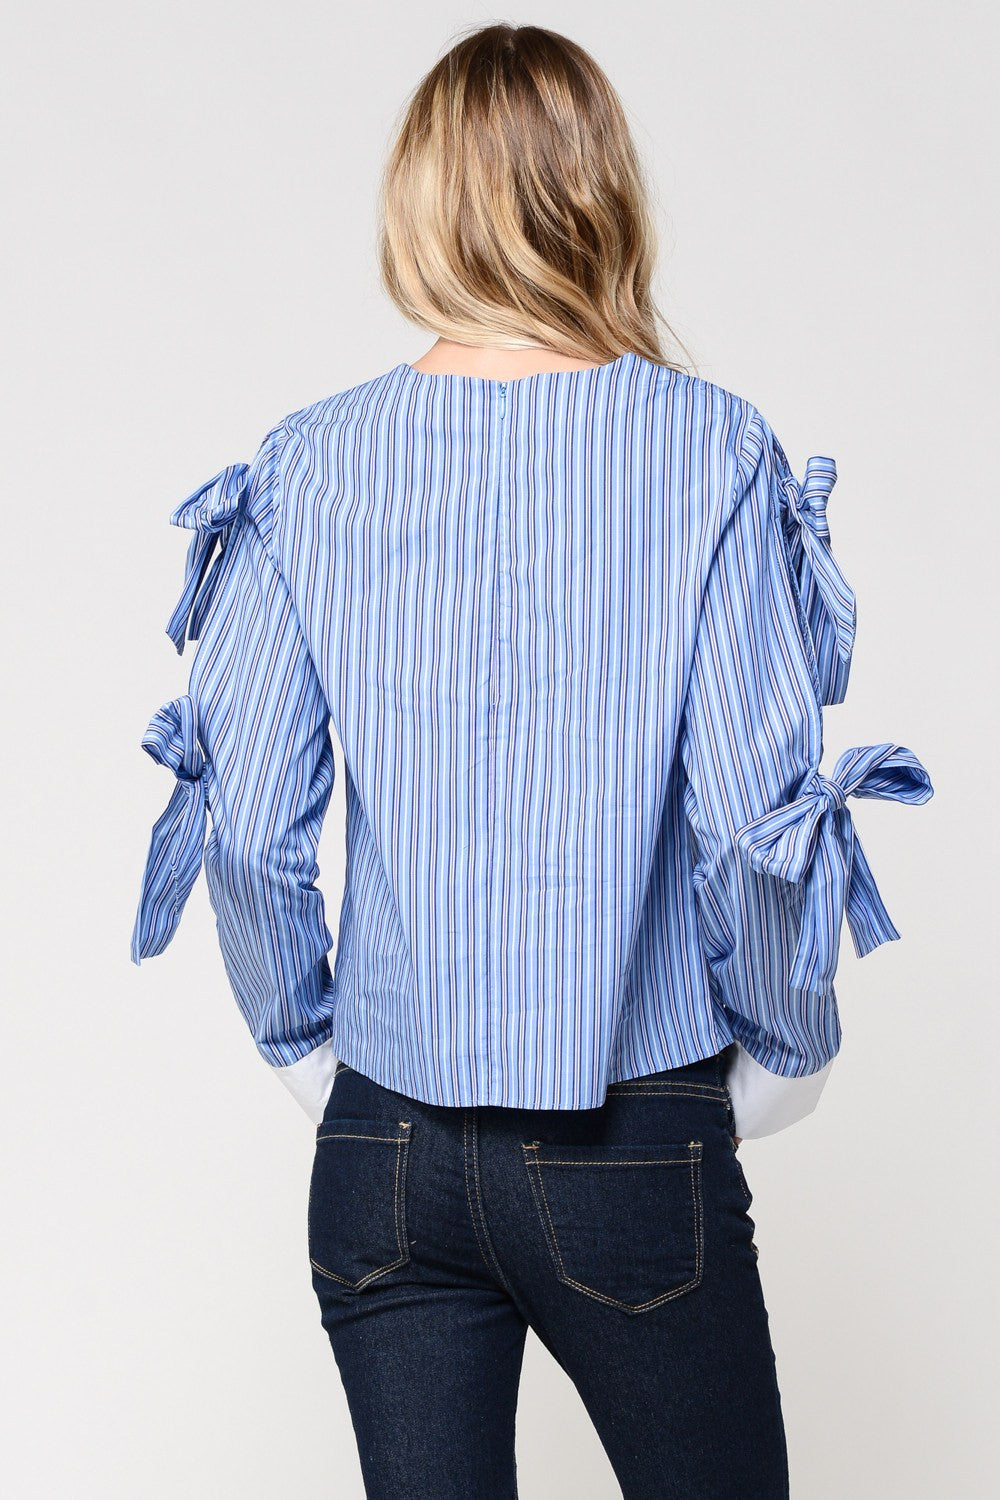 Blue Stripes Ribbon Tie Sleeve Shirt